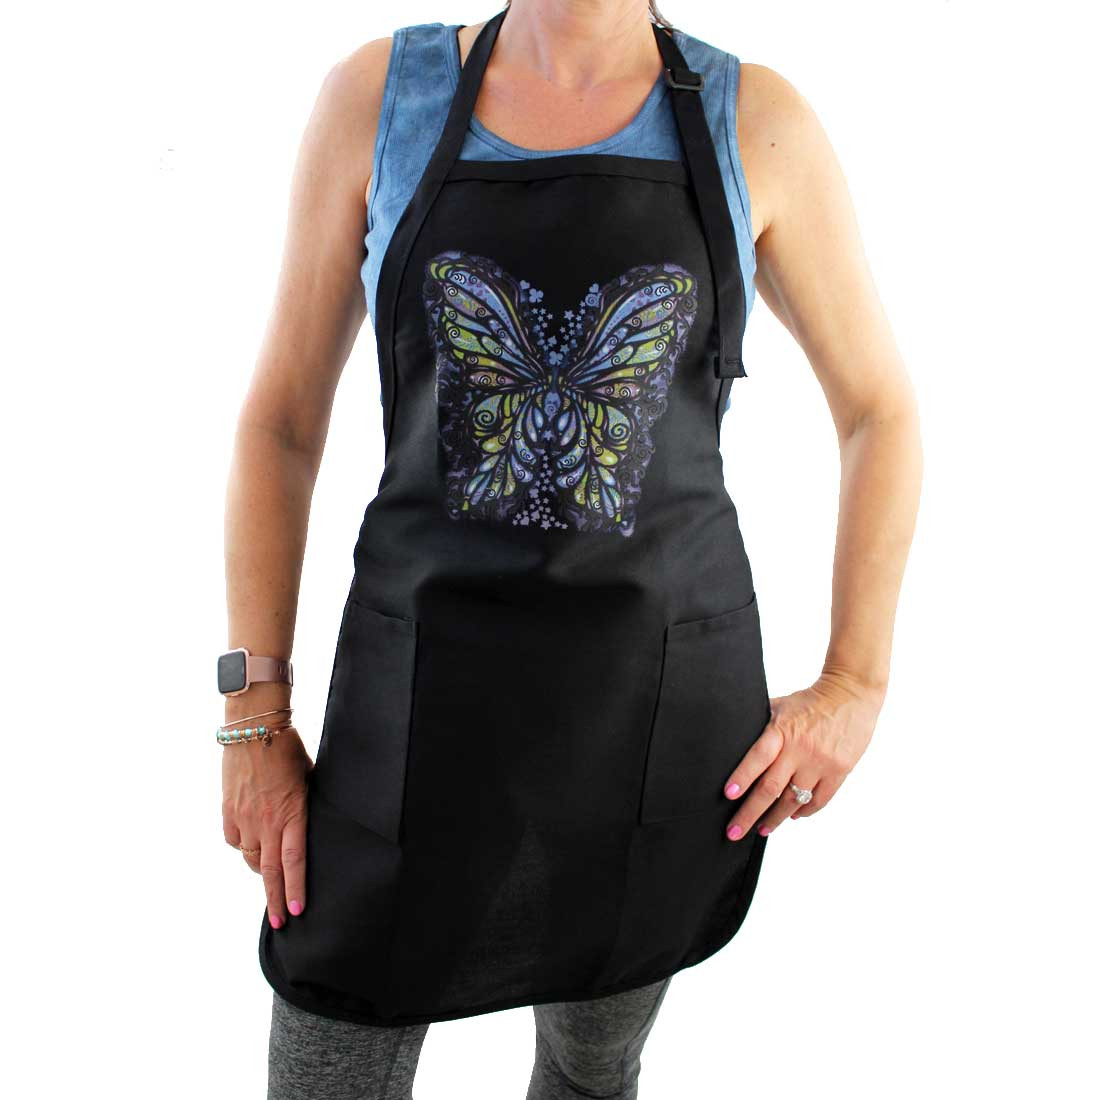 Full Length Black Apron with Colorful Butterfly Design